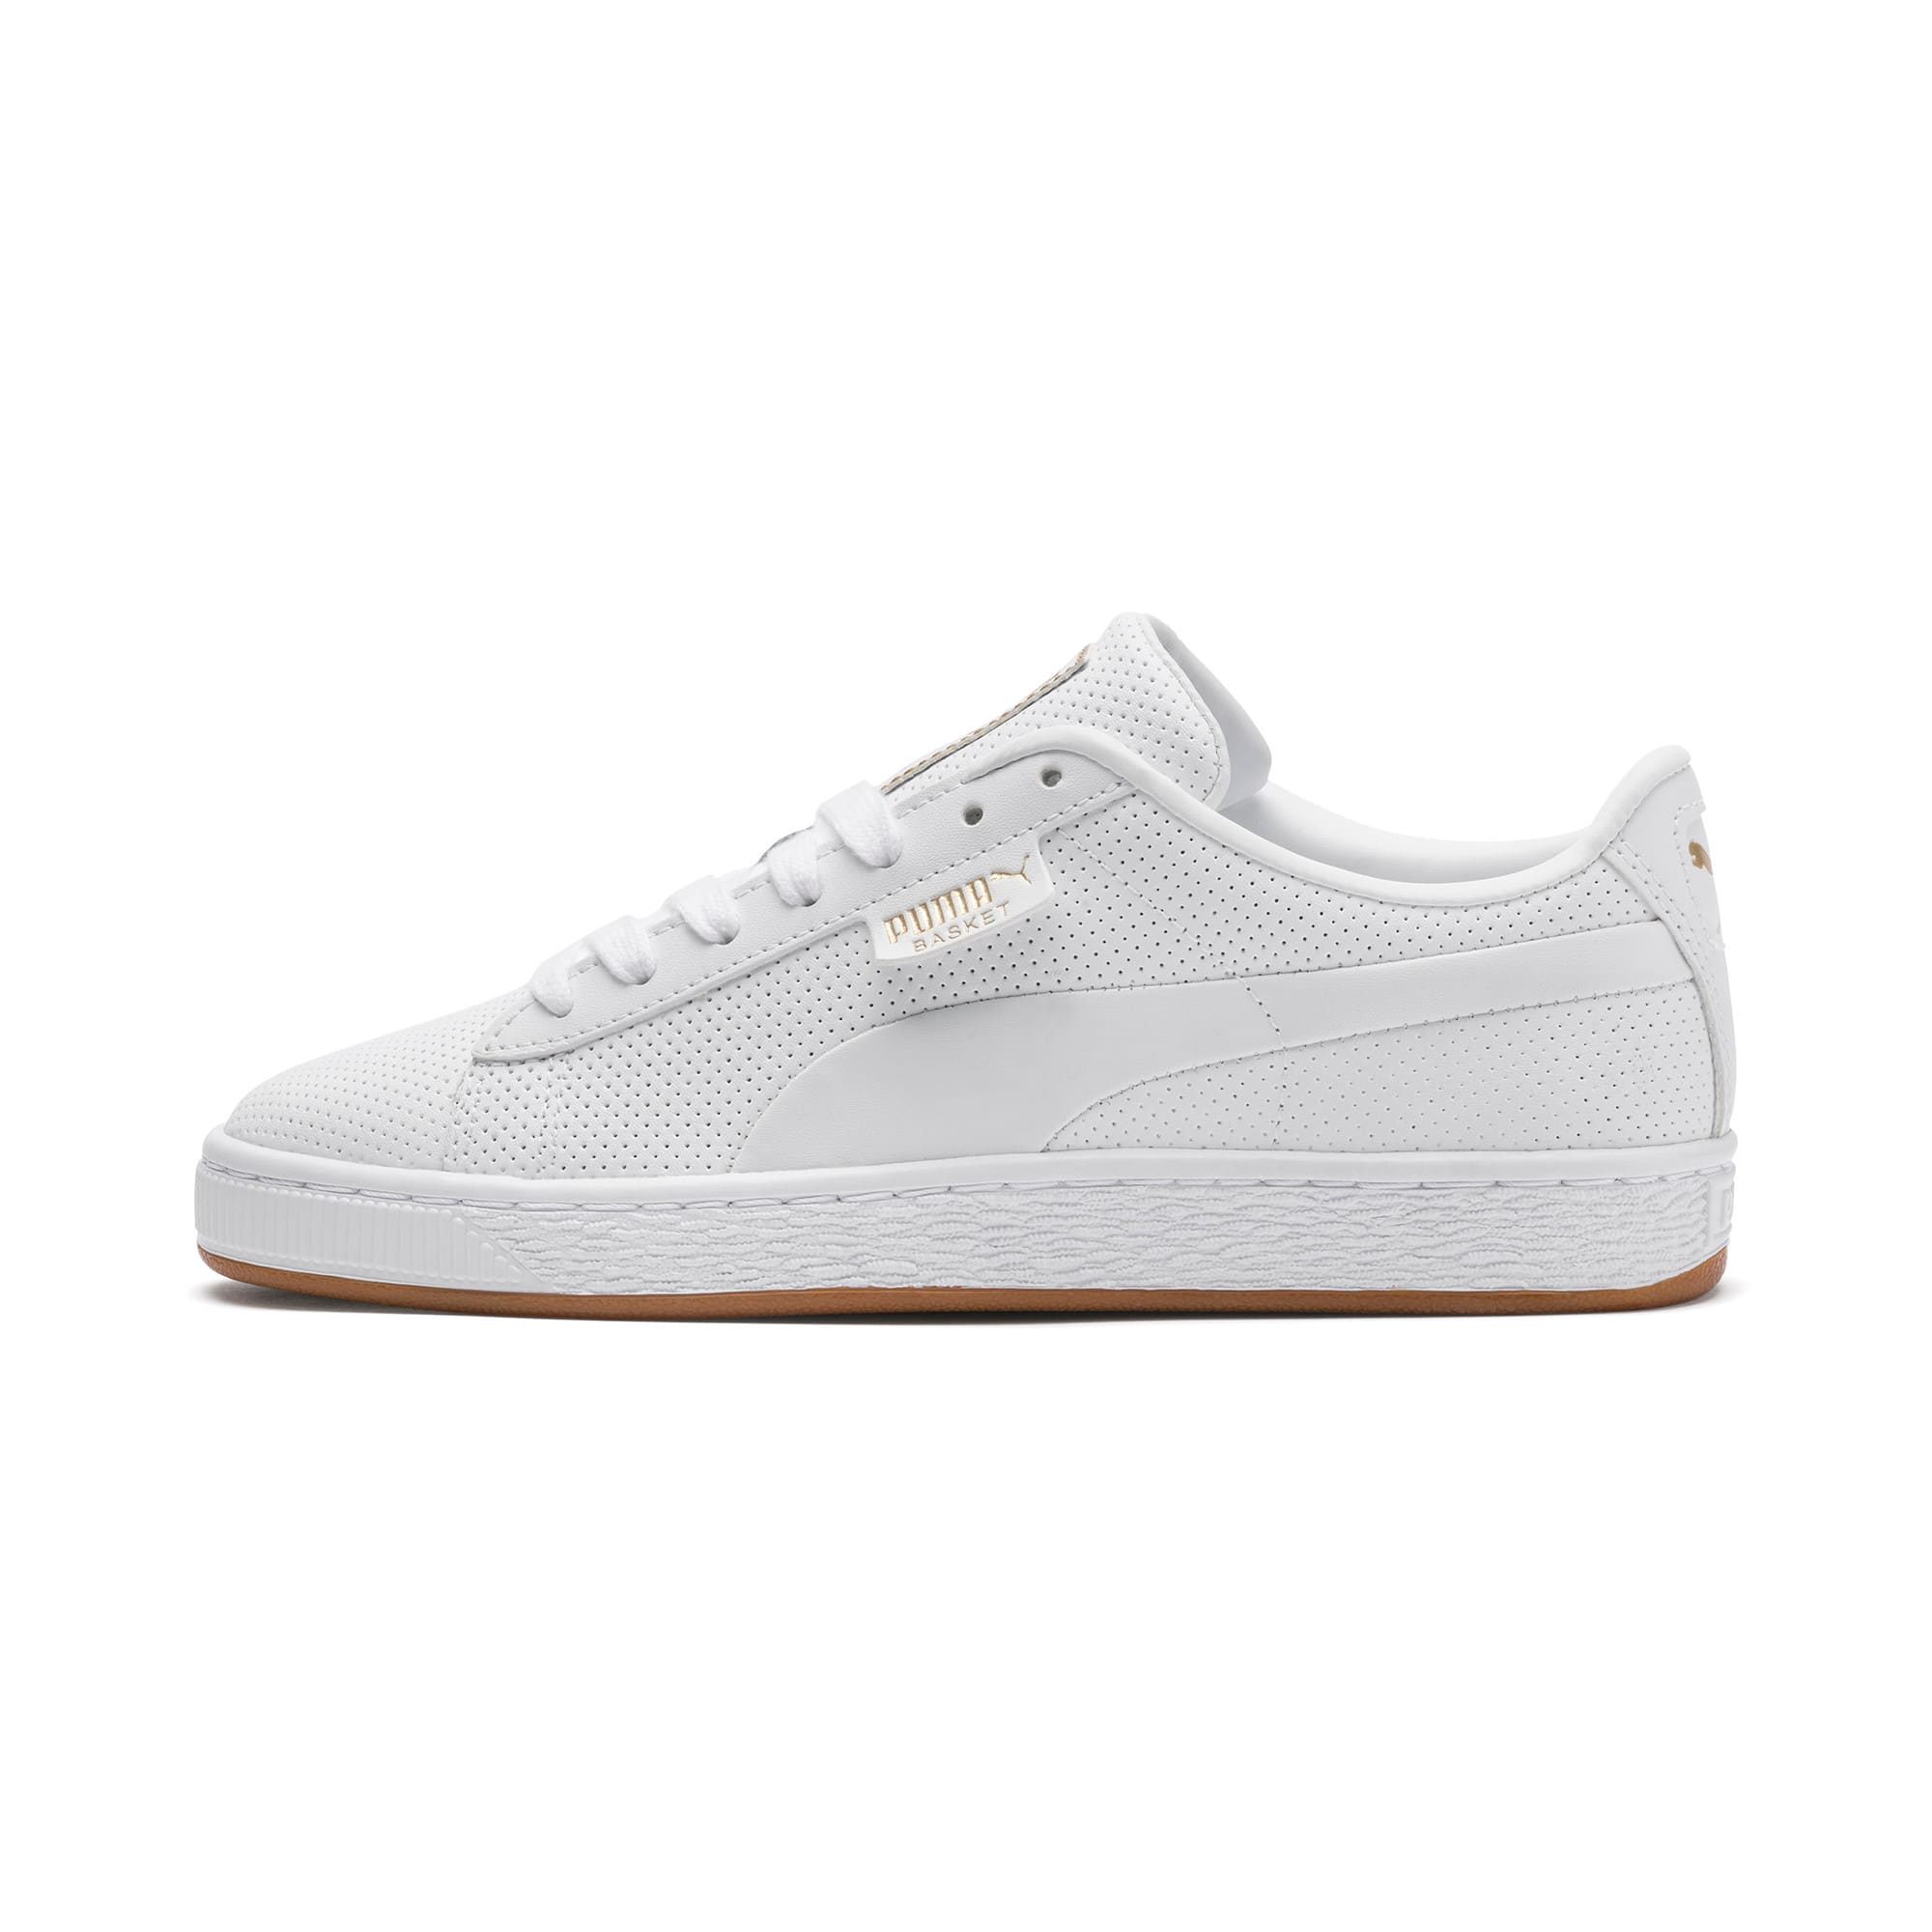 Basket Classic Gum Youth Sneaker, Puma White-Gum, large